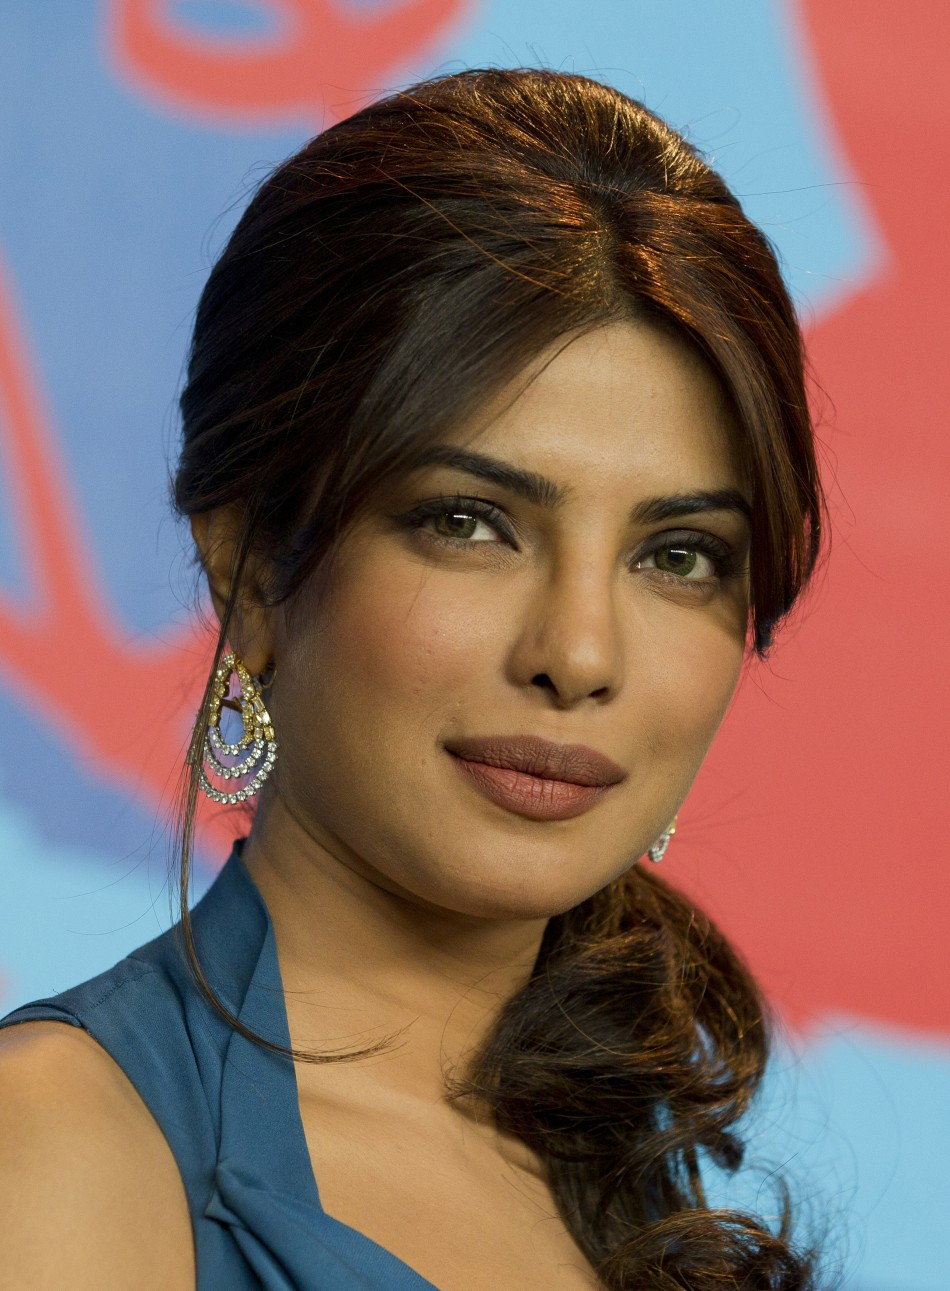 Swedish House Mafia Hd Wallpapers Bollywood S Priyanka Chopra To Work With David Guetta